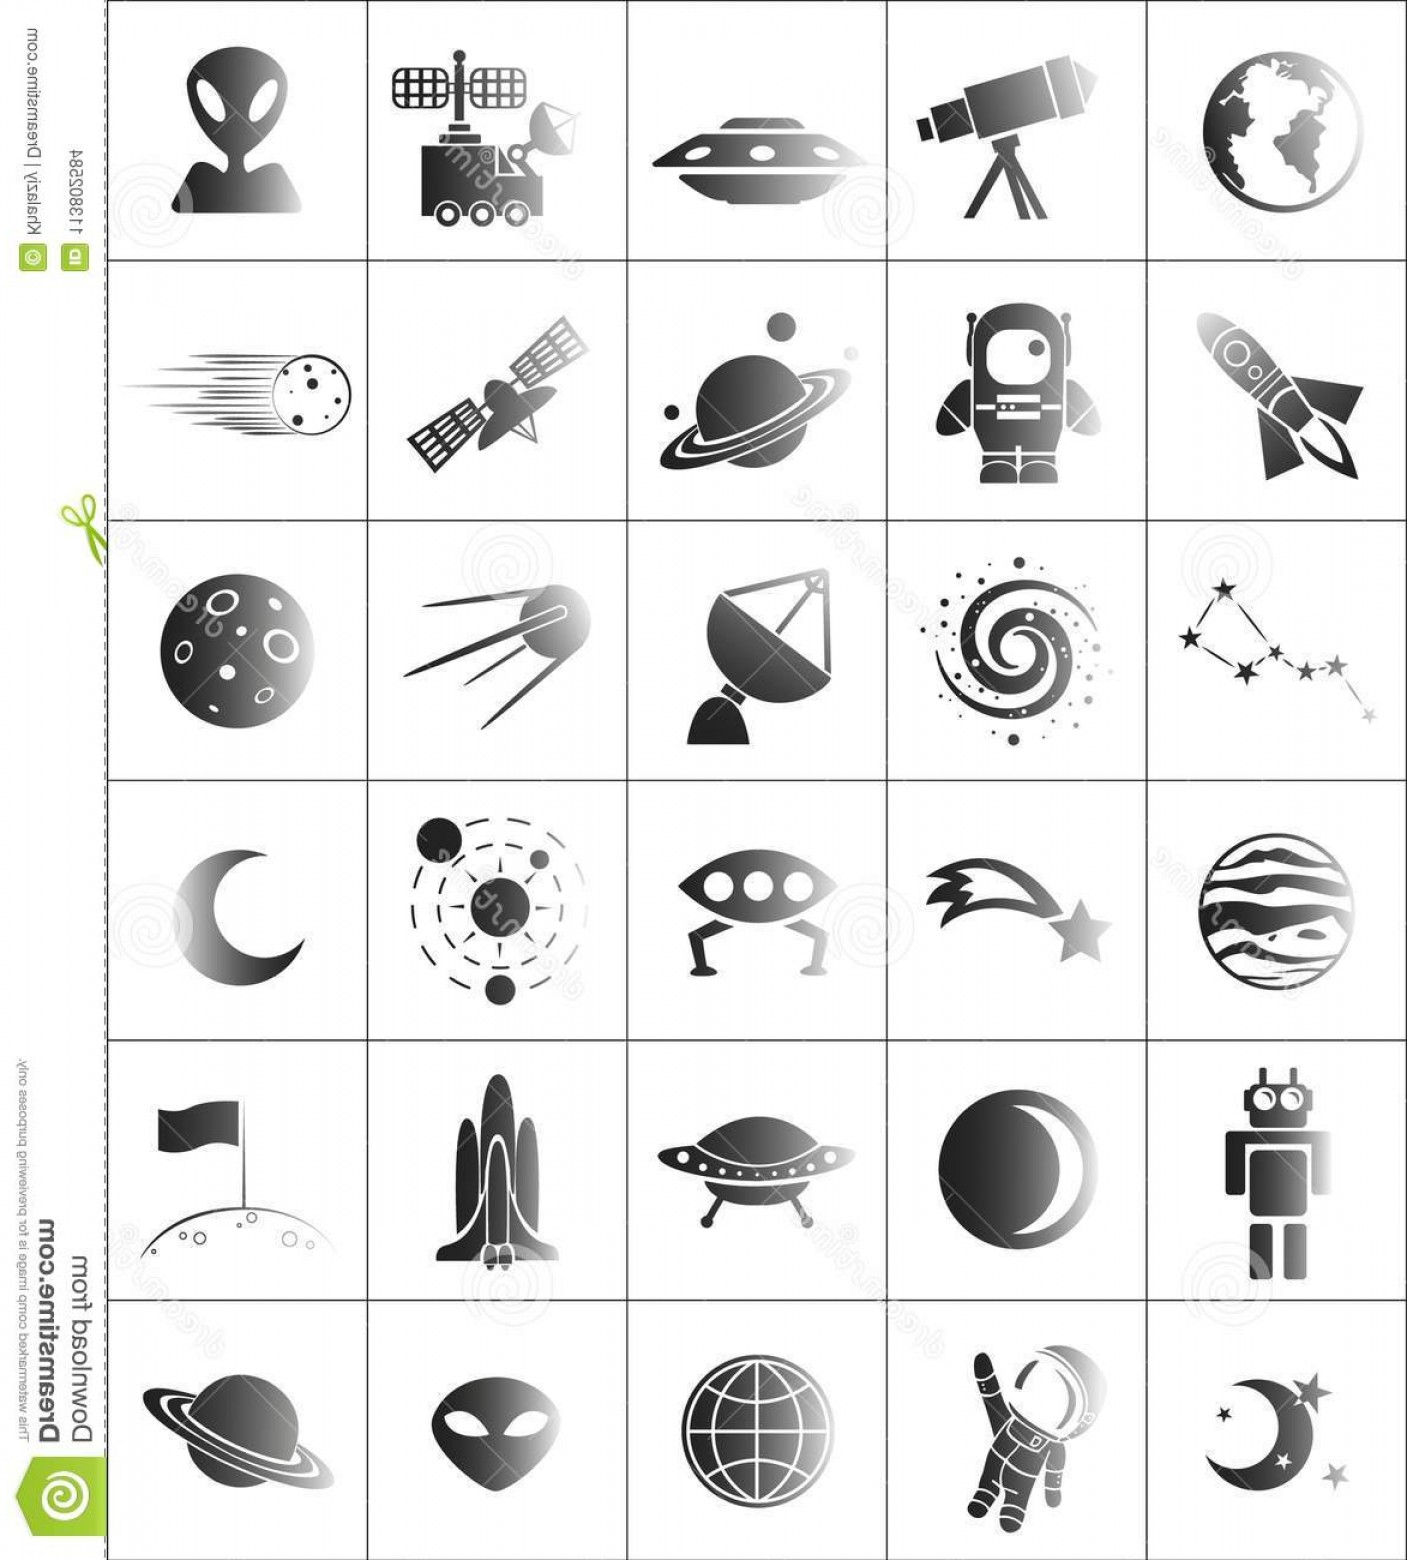 Cosmic Vector Imige: Space Cosmic Vector Icons Illustration Different Featuring Image